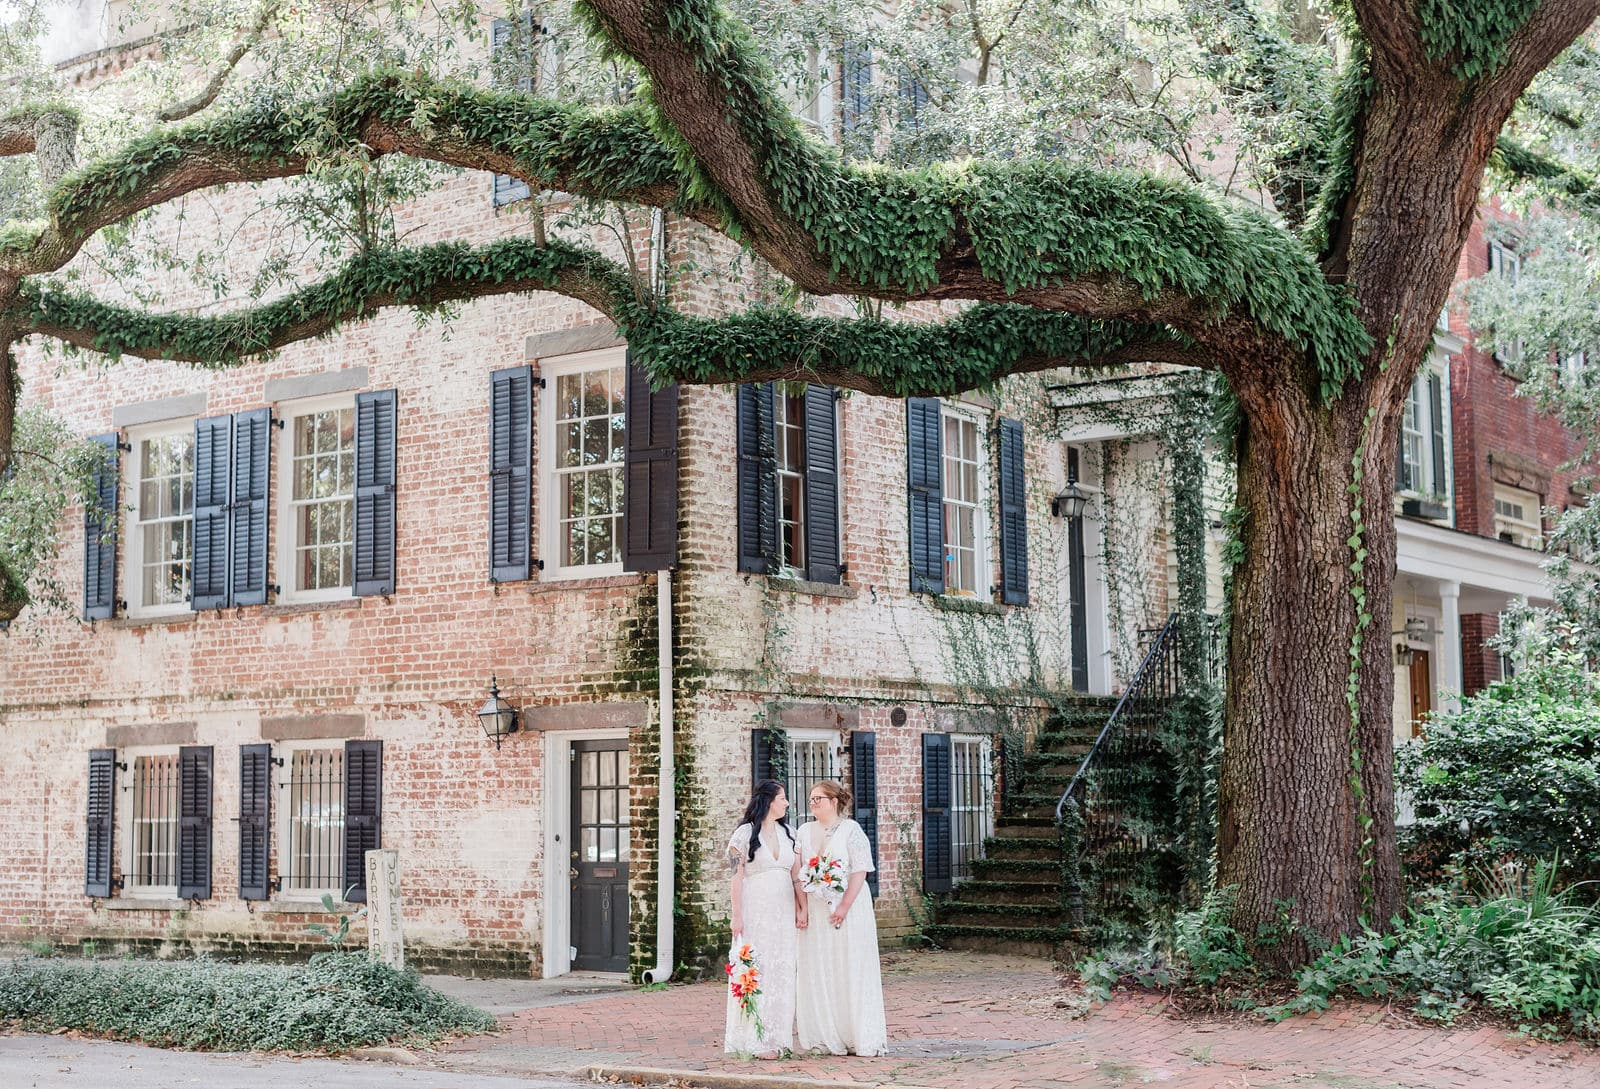 jones street wedding photo in savannah